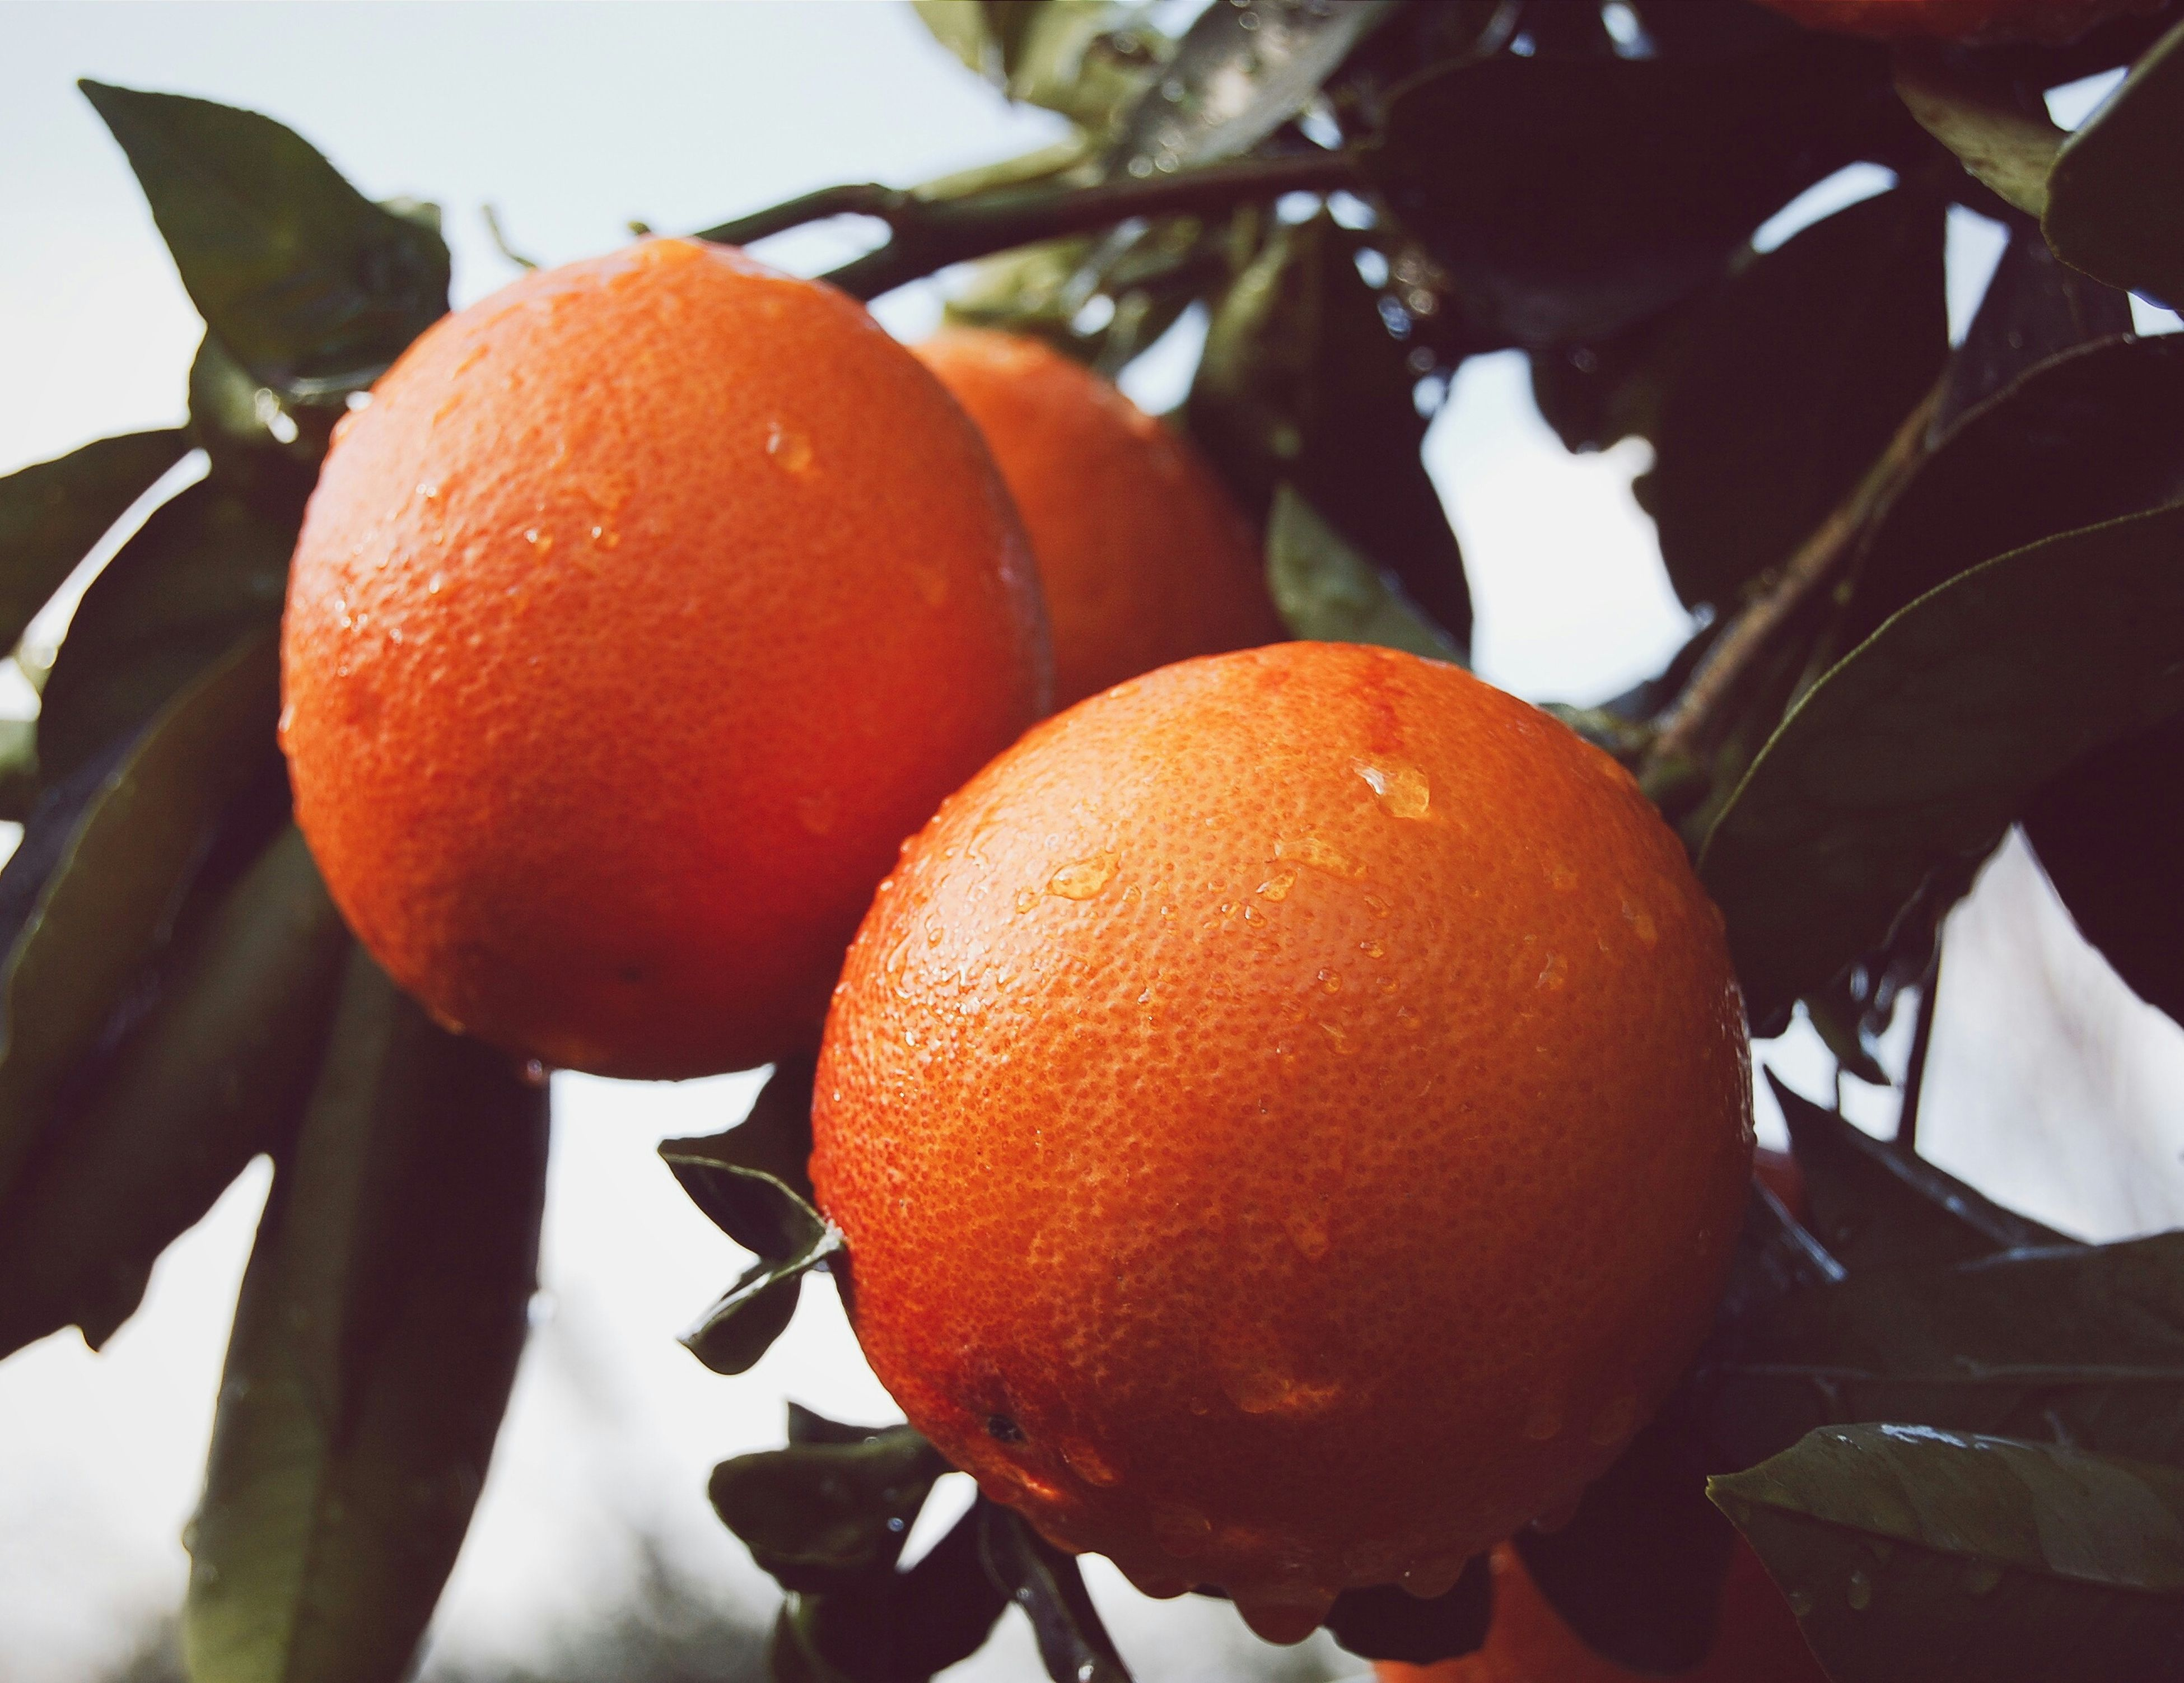 food and drink, fruit, food, freshness, healthy eating, tree, close-up, leaf, focus on foreground, orange color, branch, growth, hanging, no people, orange - fruit, ripe, nature, outdoors, red, low angle view